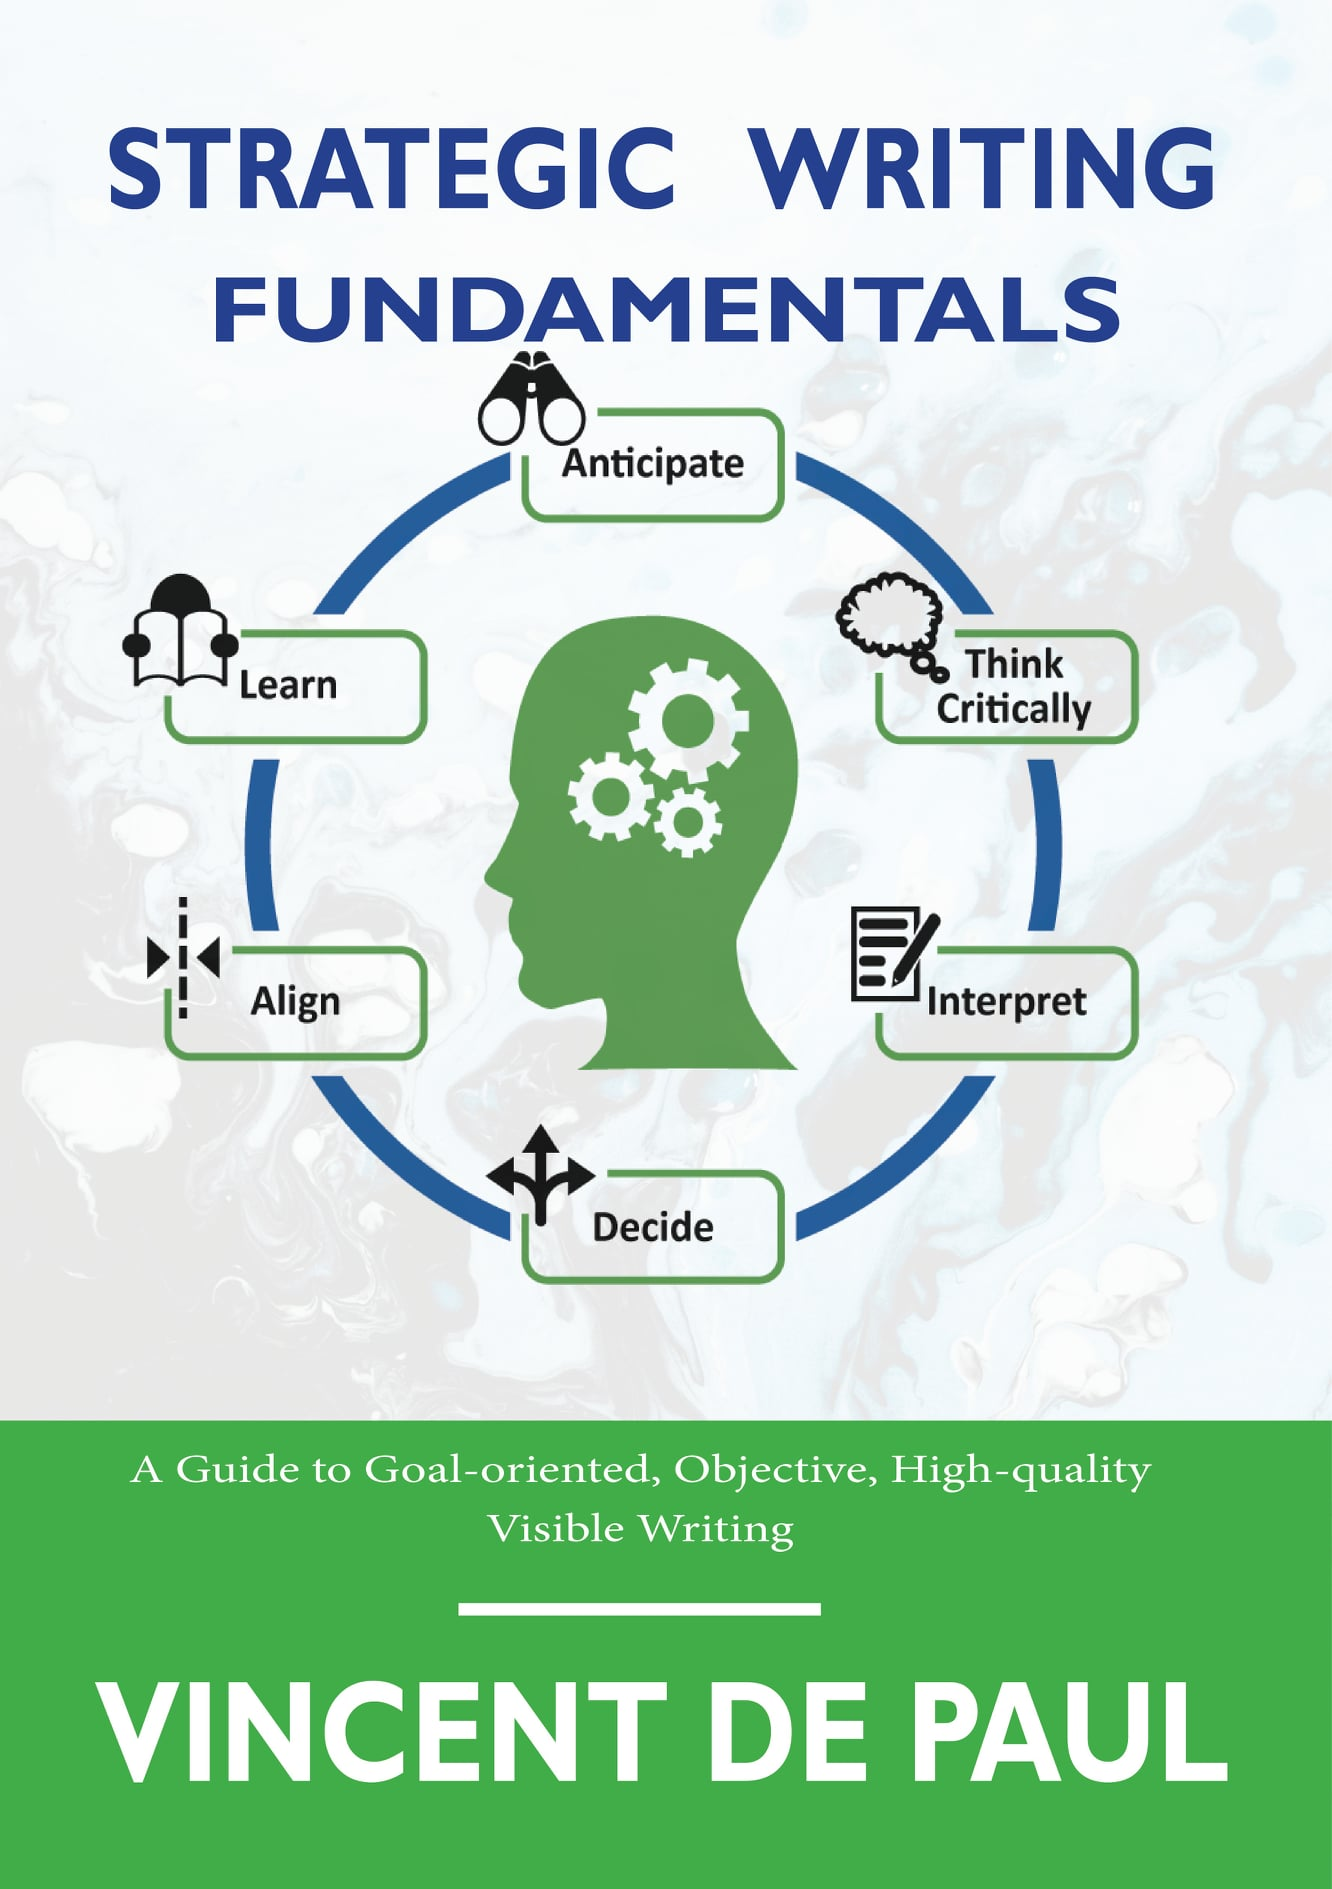 Upcoming Book Release | Strategic Writing Fundamentals by Vincent de Paul